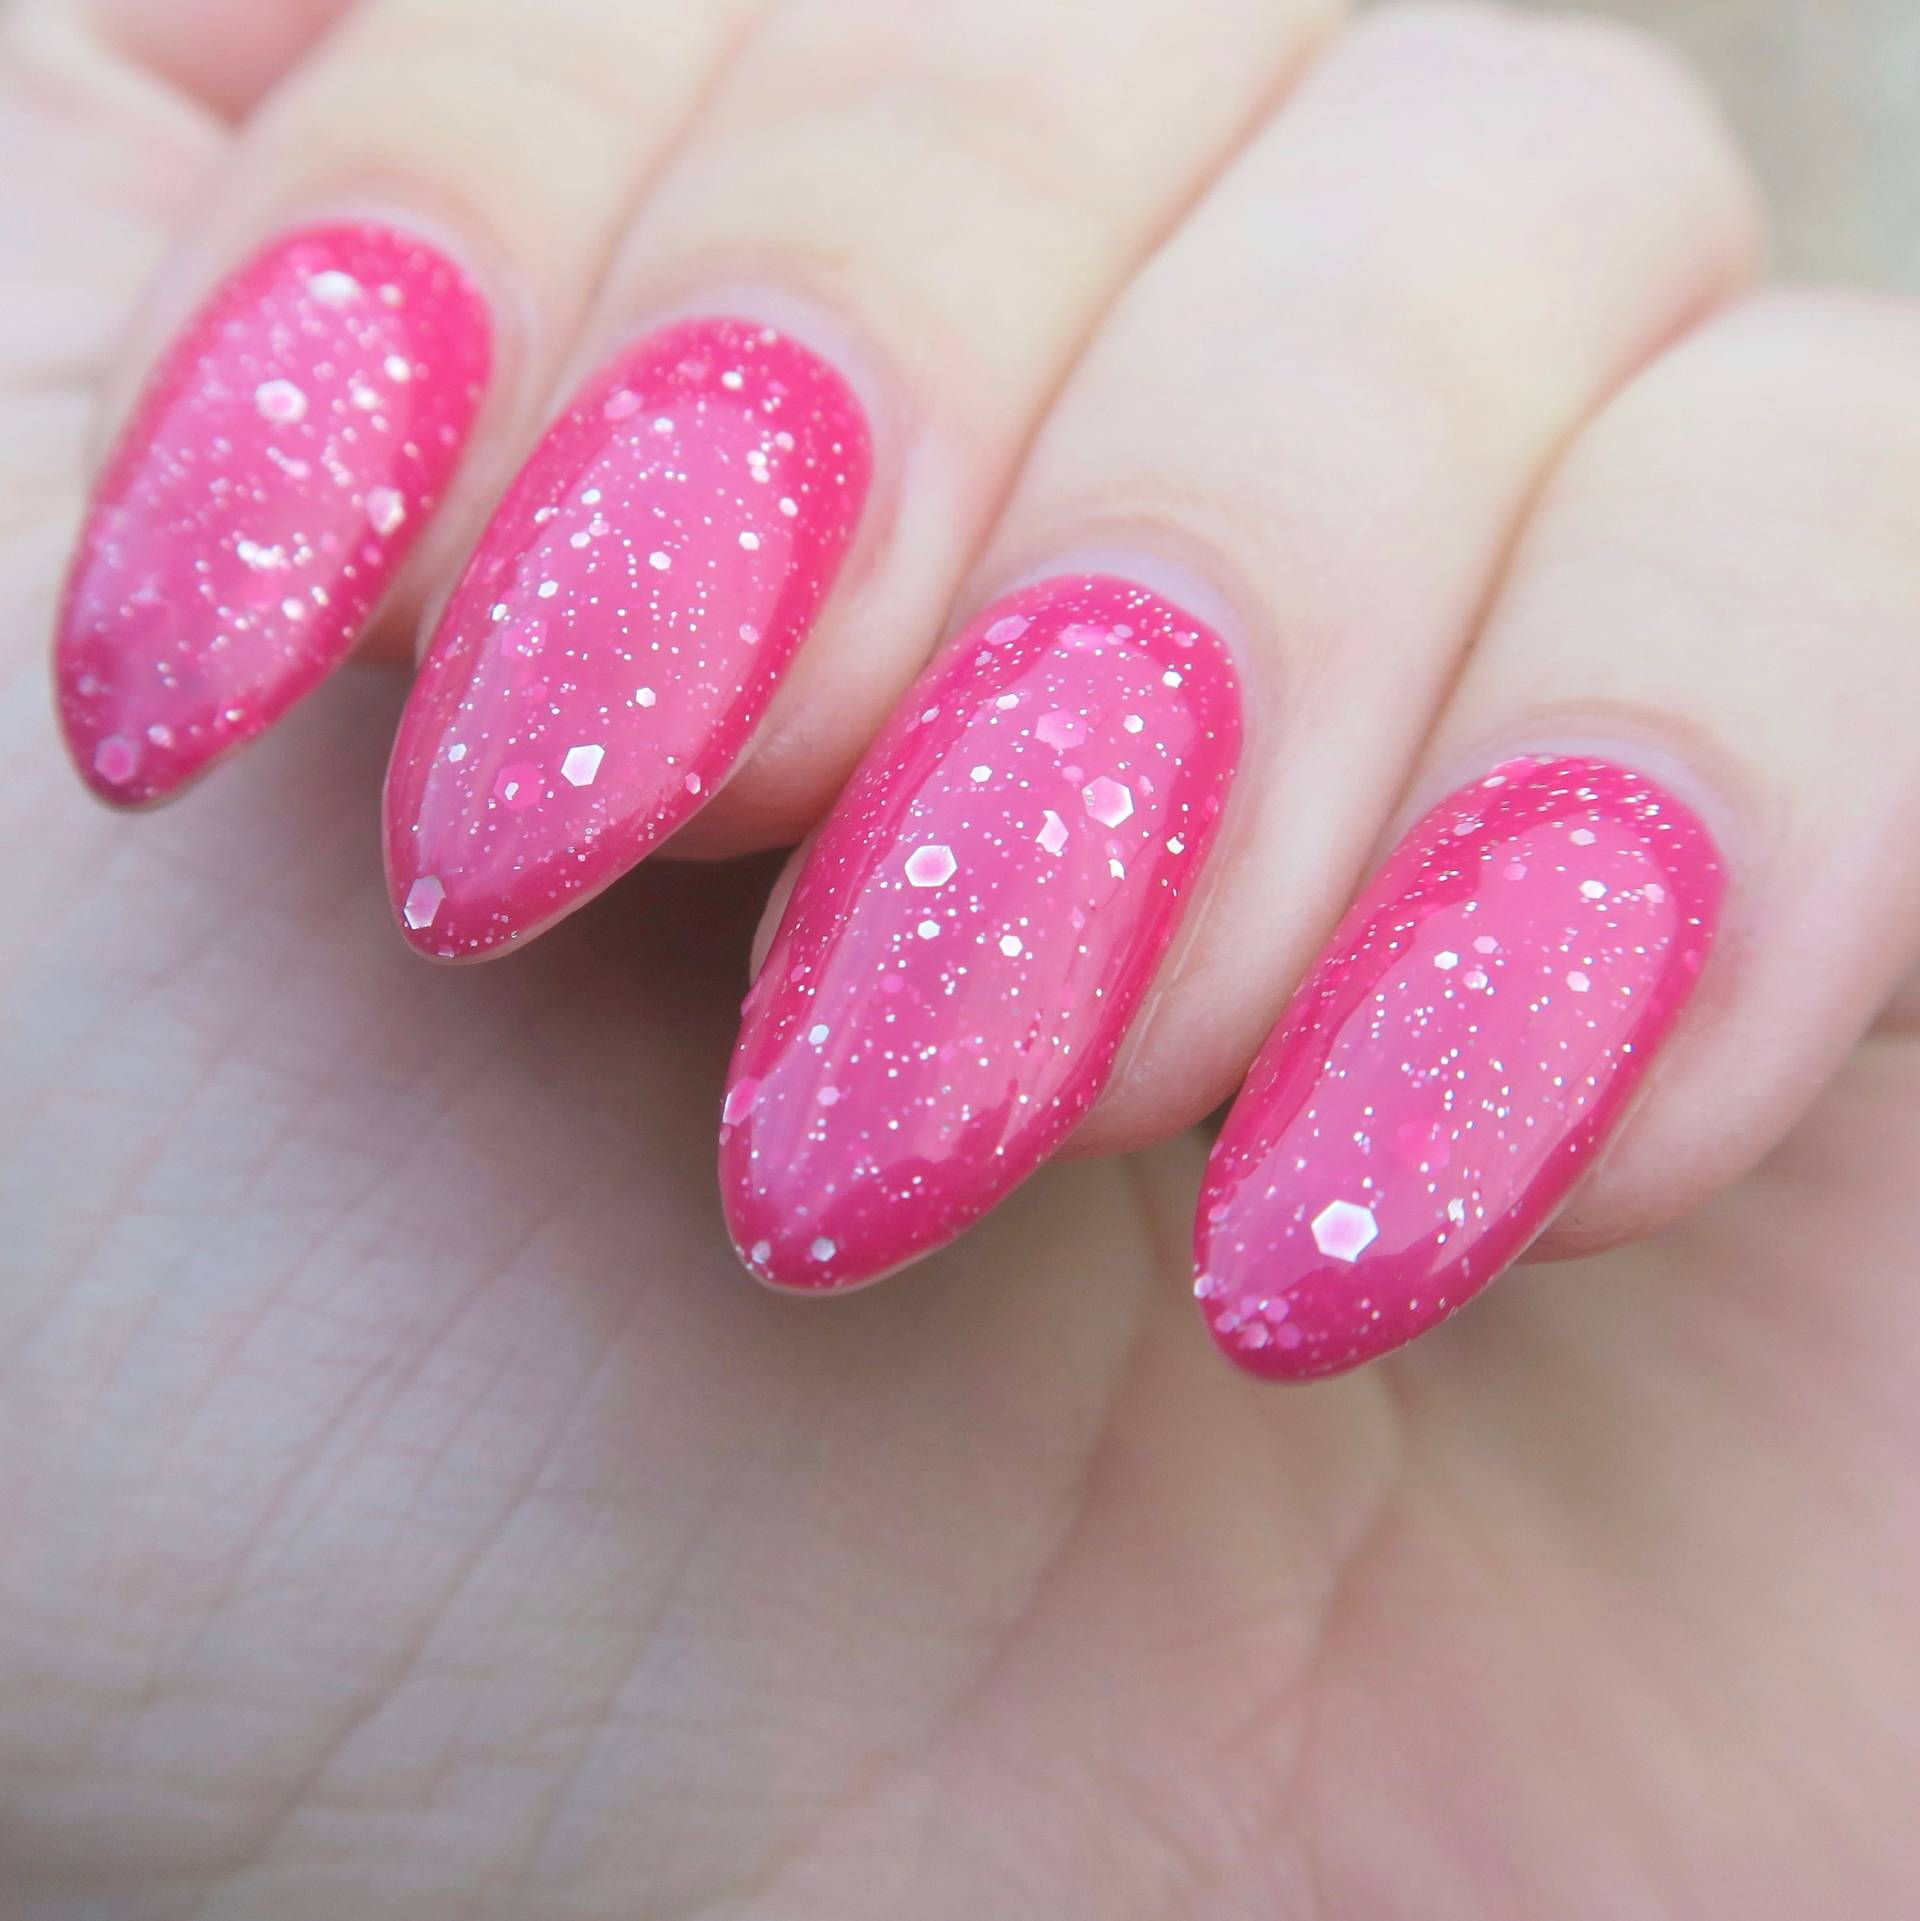 Madam-Glam-New-Gel-Polish-5 (1)